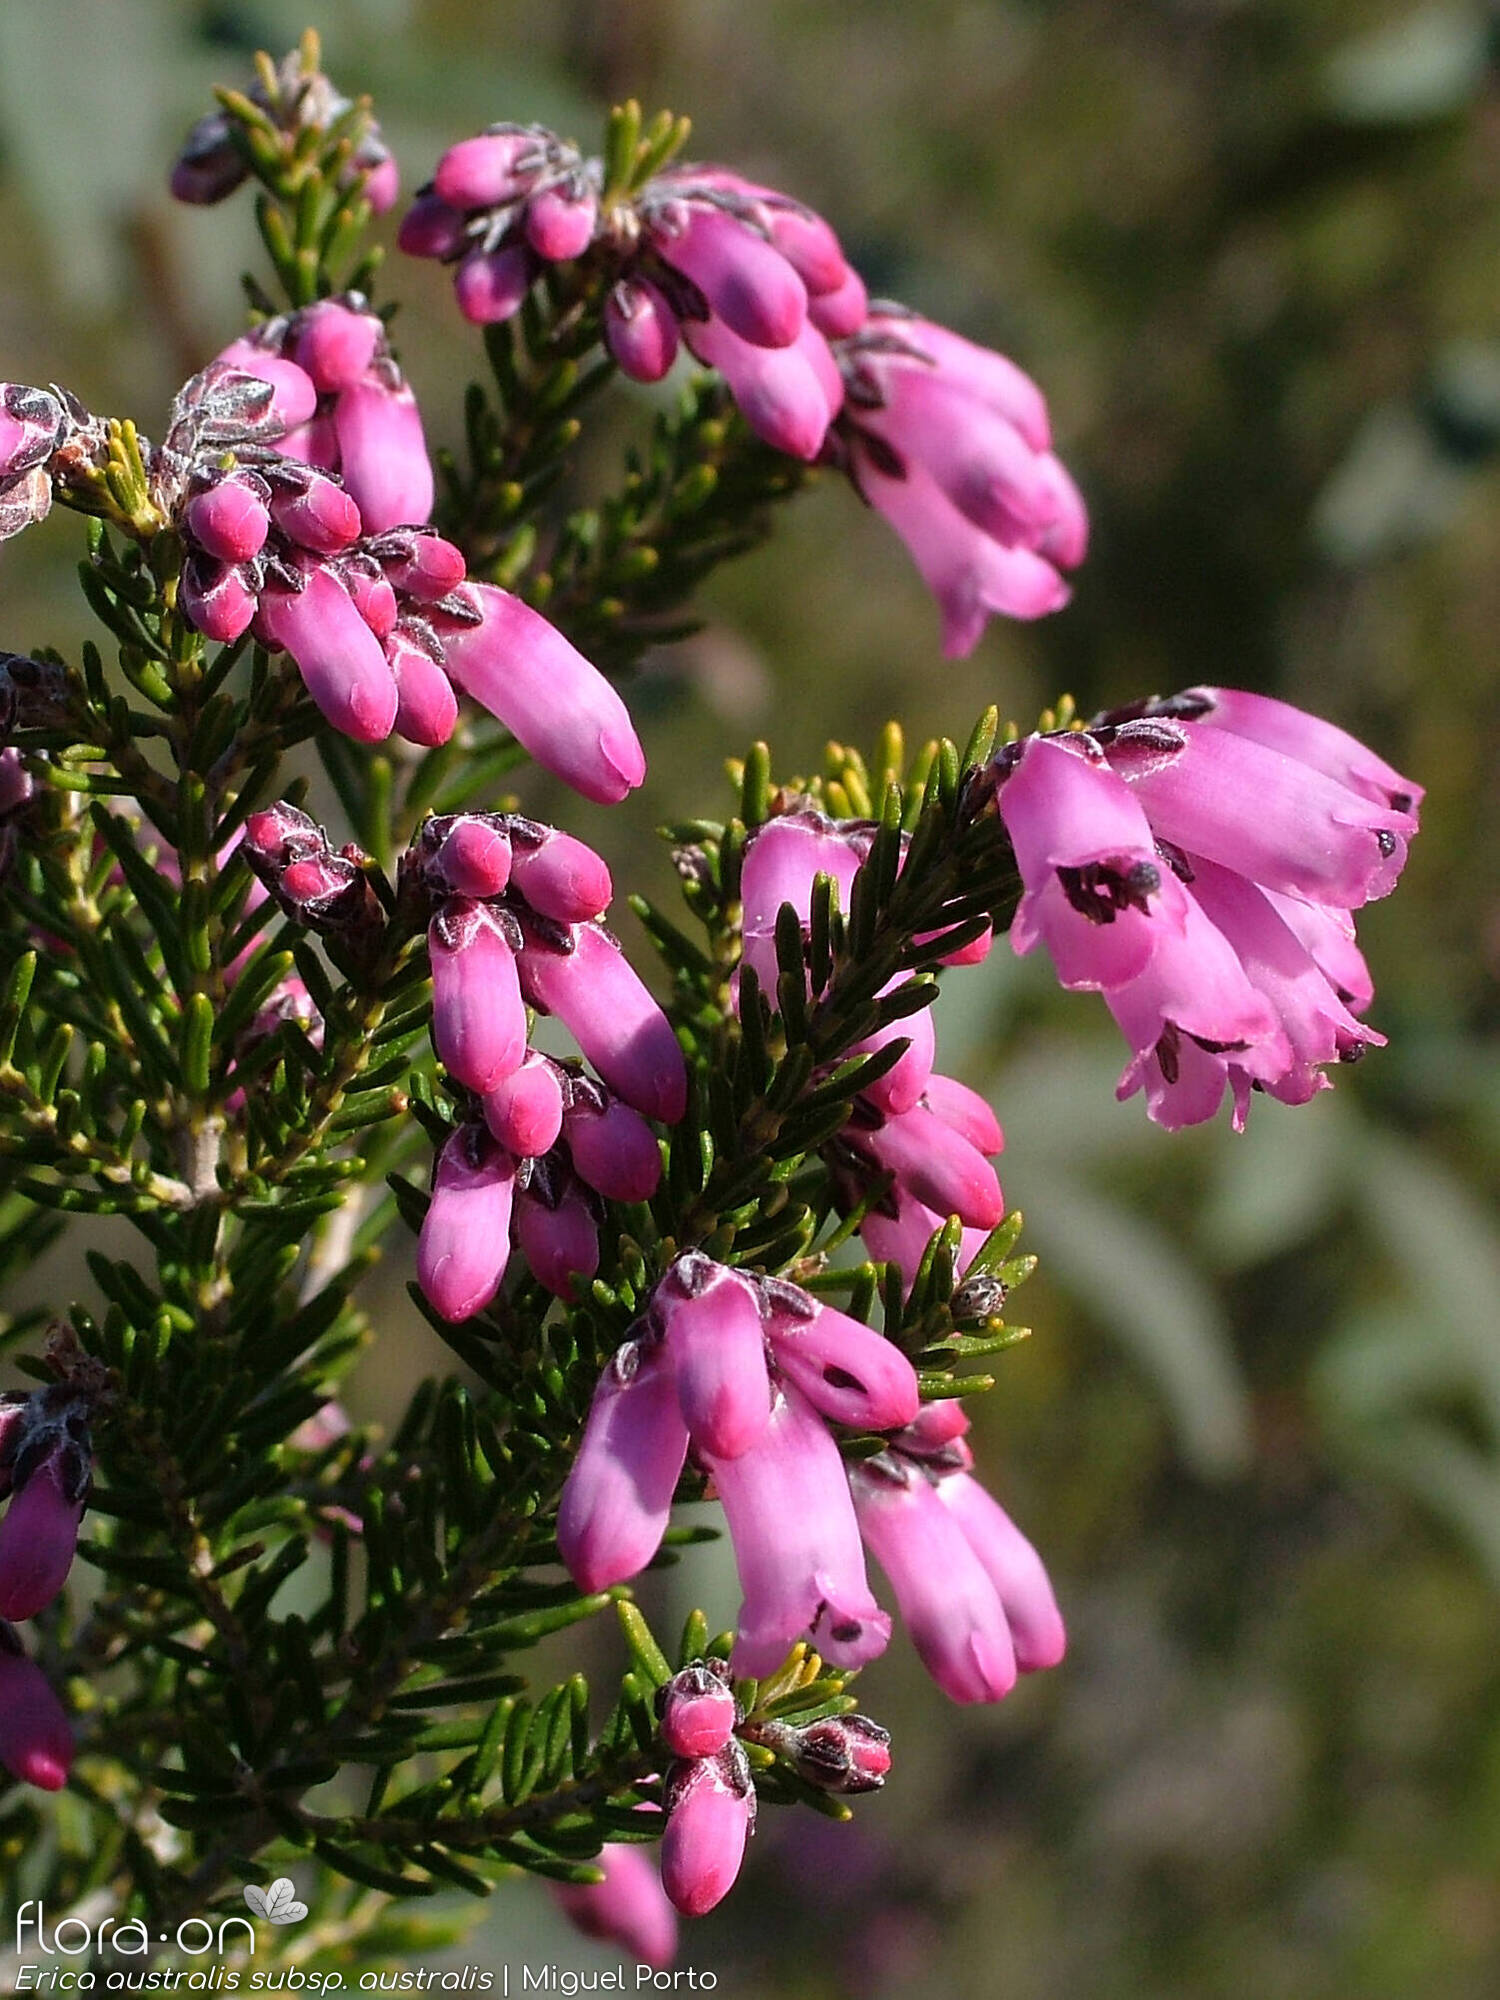 Erica australis australis - Flor (close-up) | Miguel Porto; CC BY-NC 4.0